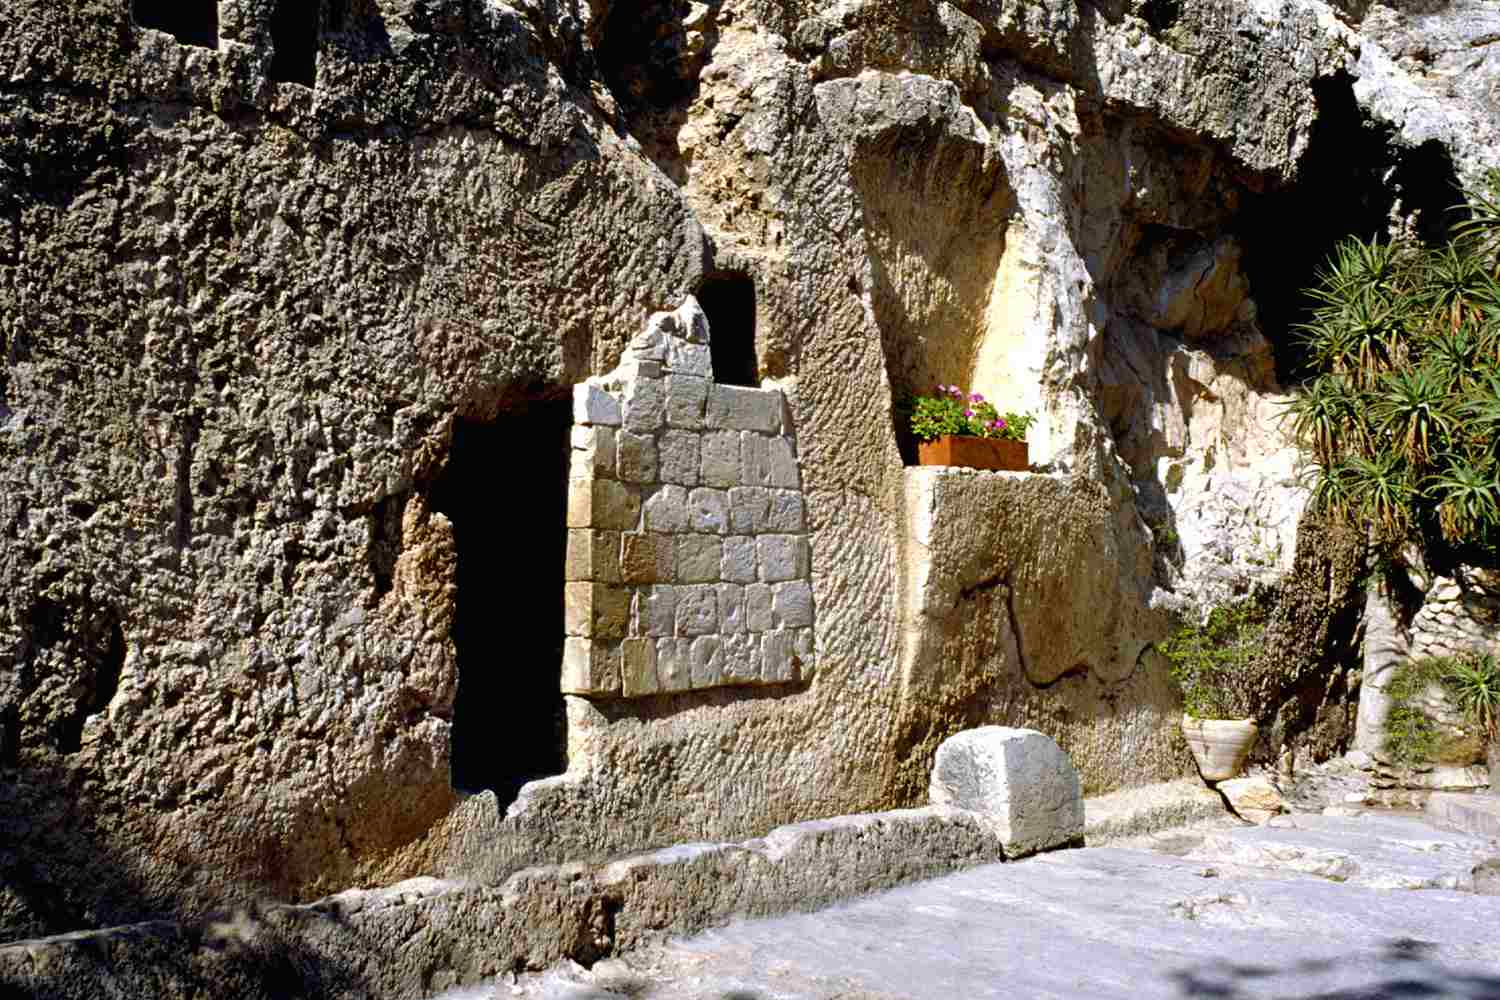 The Garden Tomb in Jerusalem, believed to be the burial place of Jesus